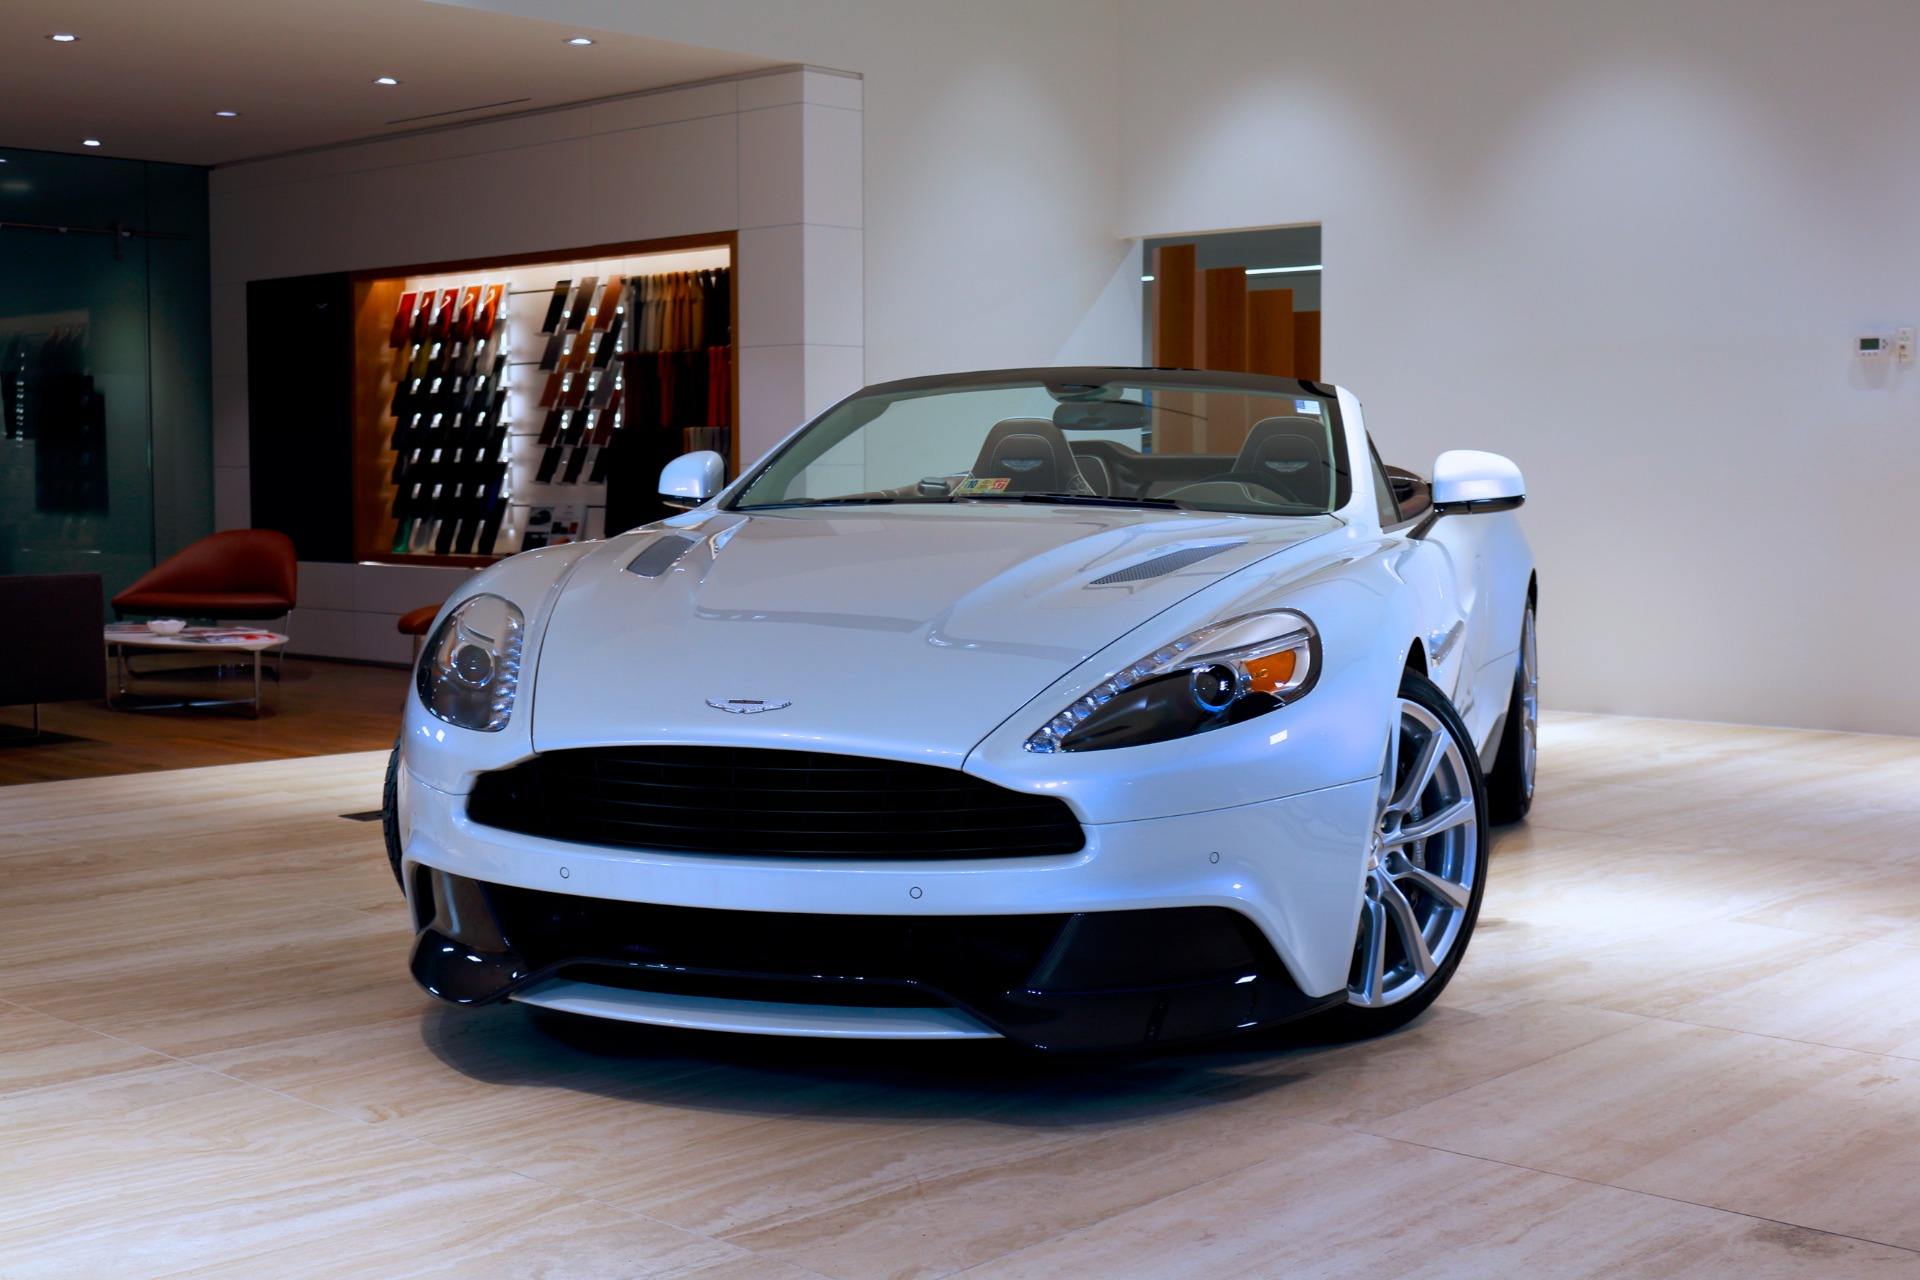 2016 Aston Martin Vanquish Volante Stock 6k02880 For Sale Near Vienna Va Va Aston Martin Dealer